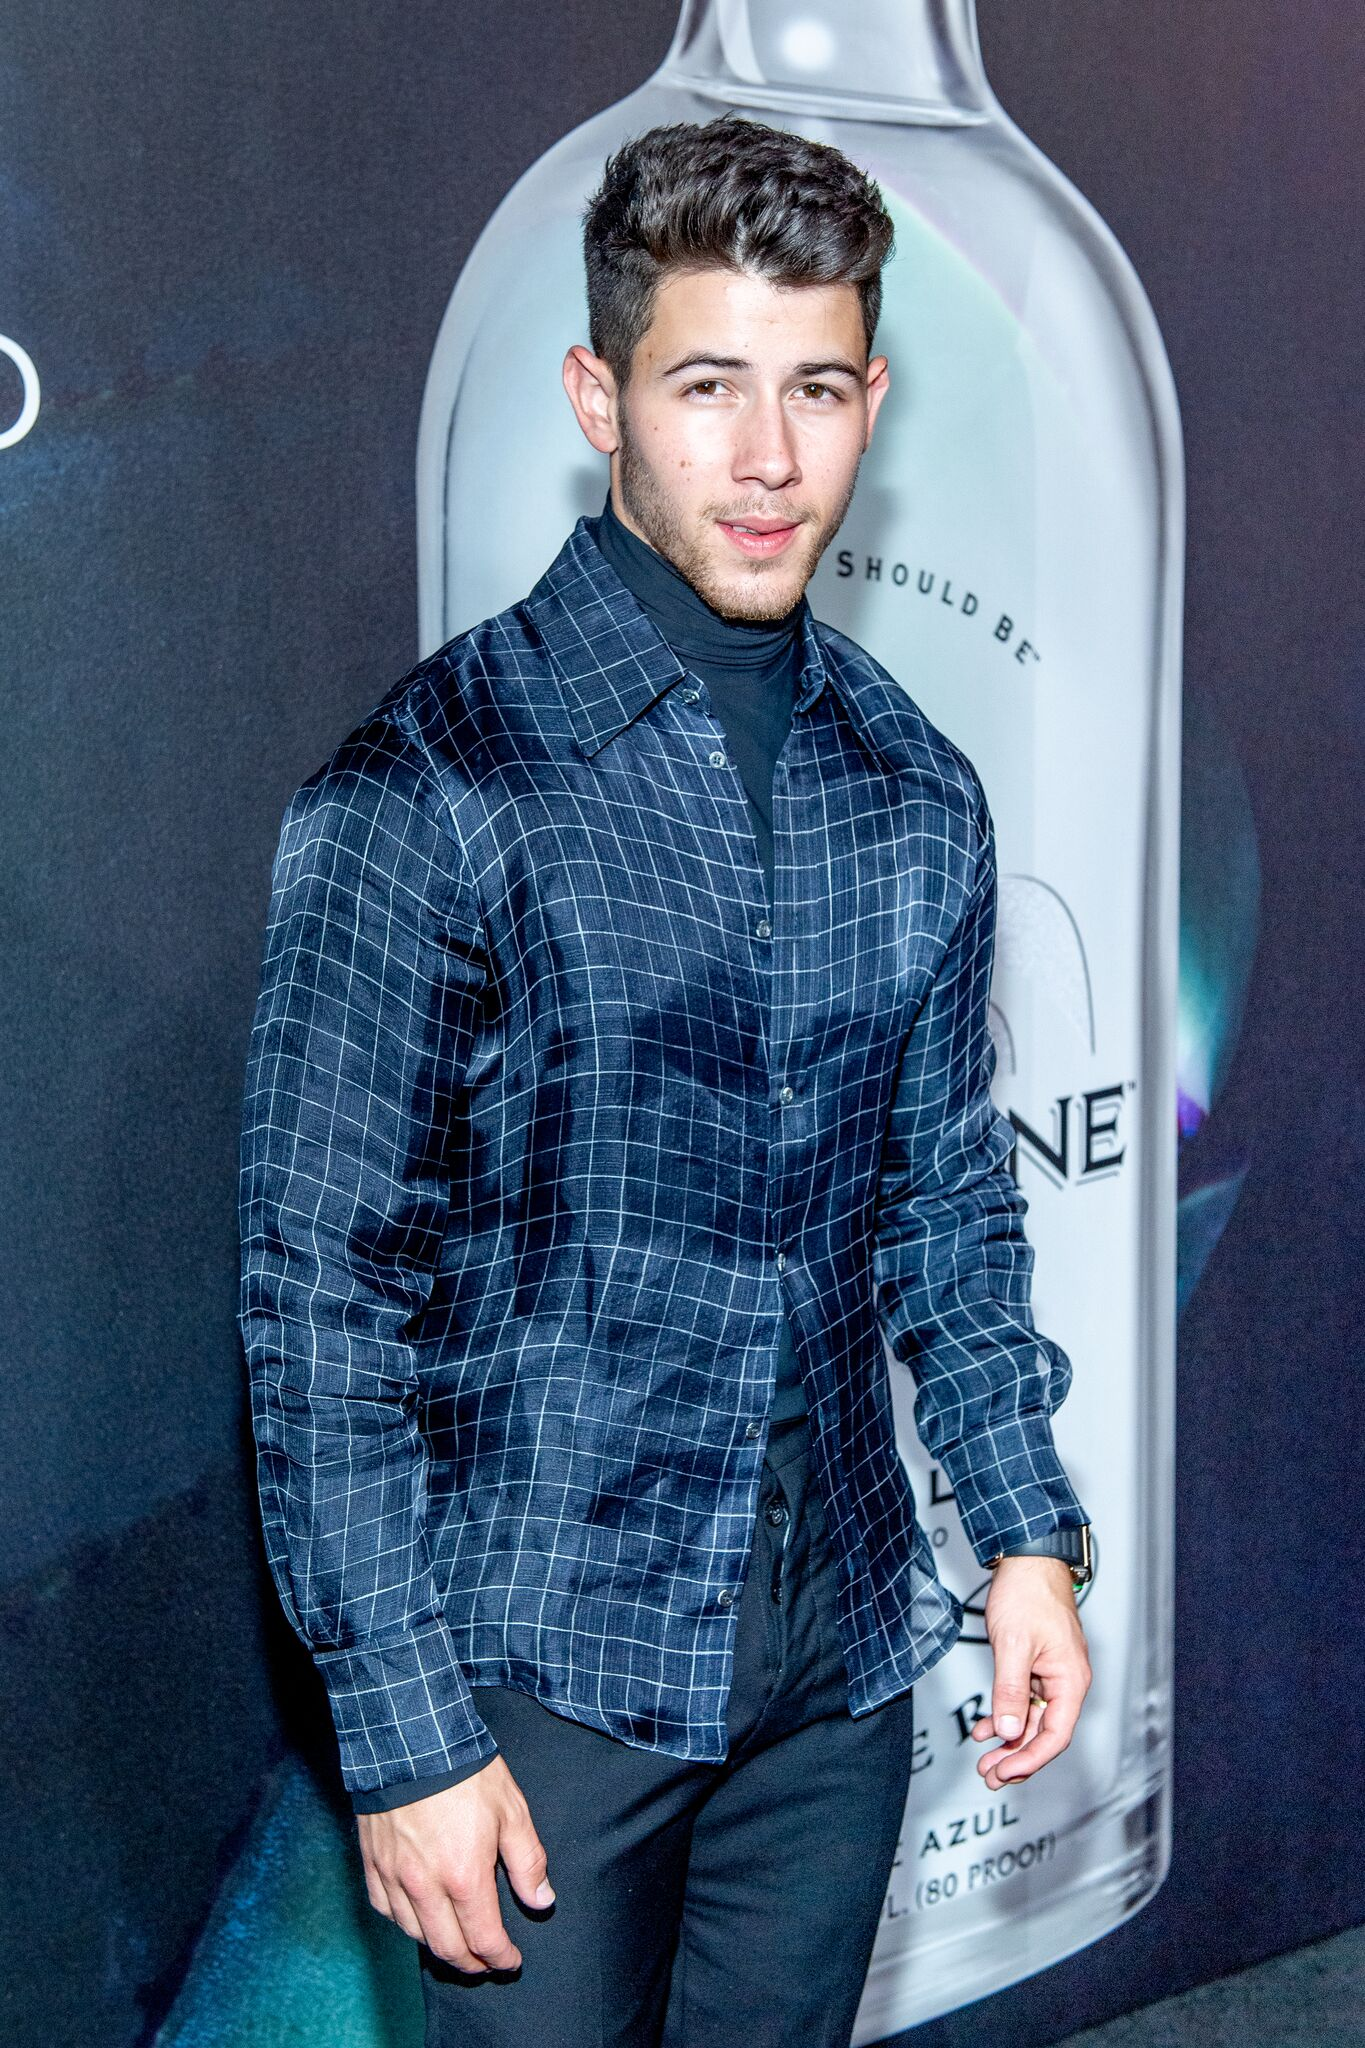 Nick Jonas attends Nick Jonas x John Varvatos Villa One Tequila Launch at John Varvatos Bowery NYC on August 29, 2019 | Photo: Getty Images